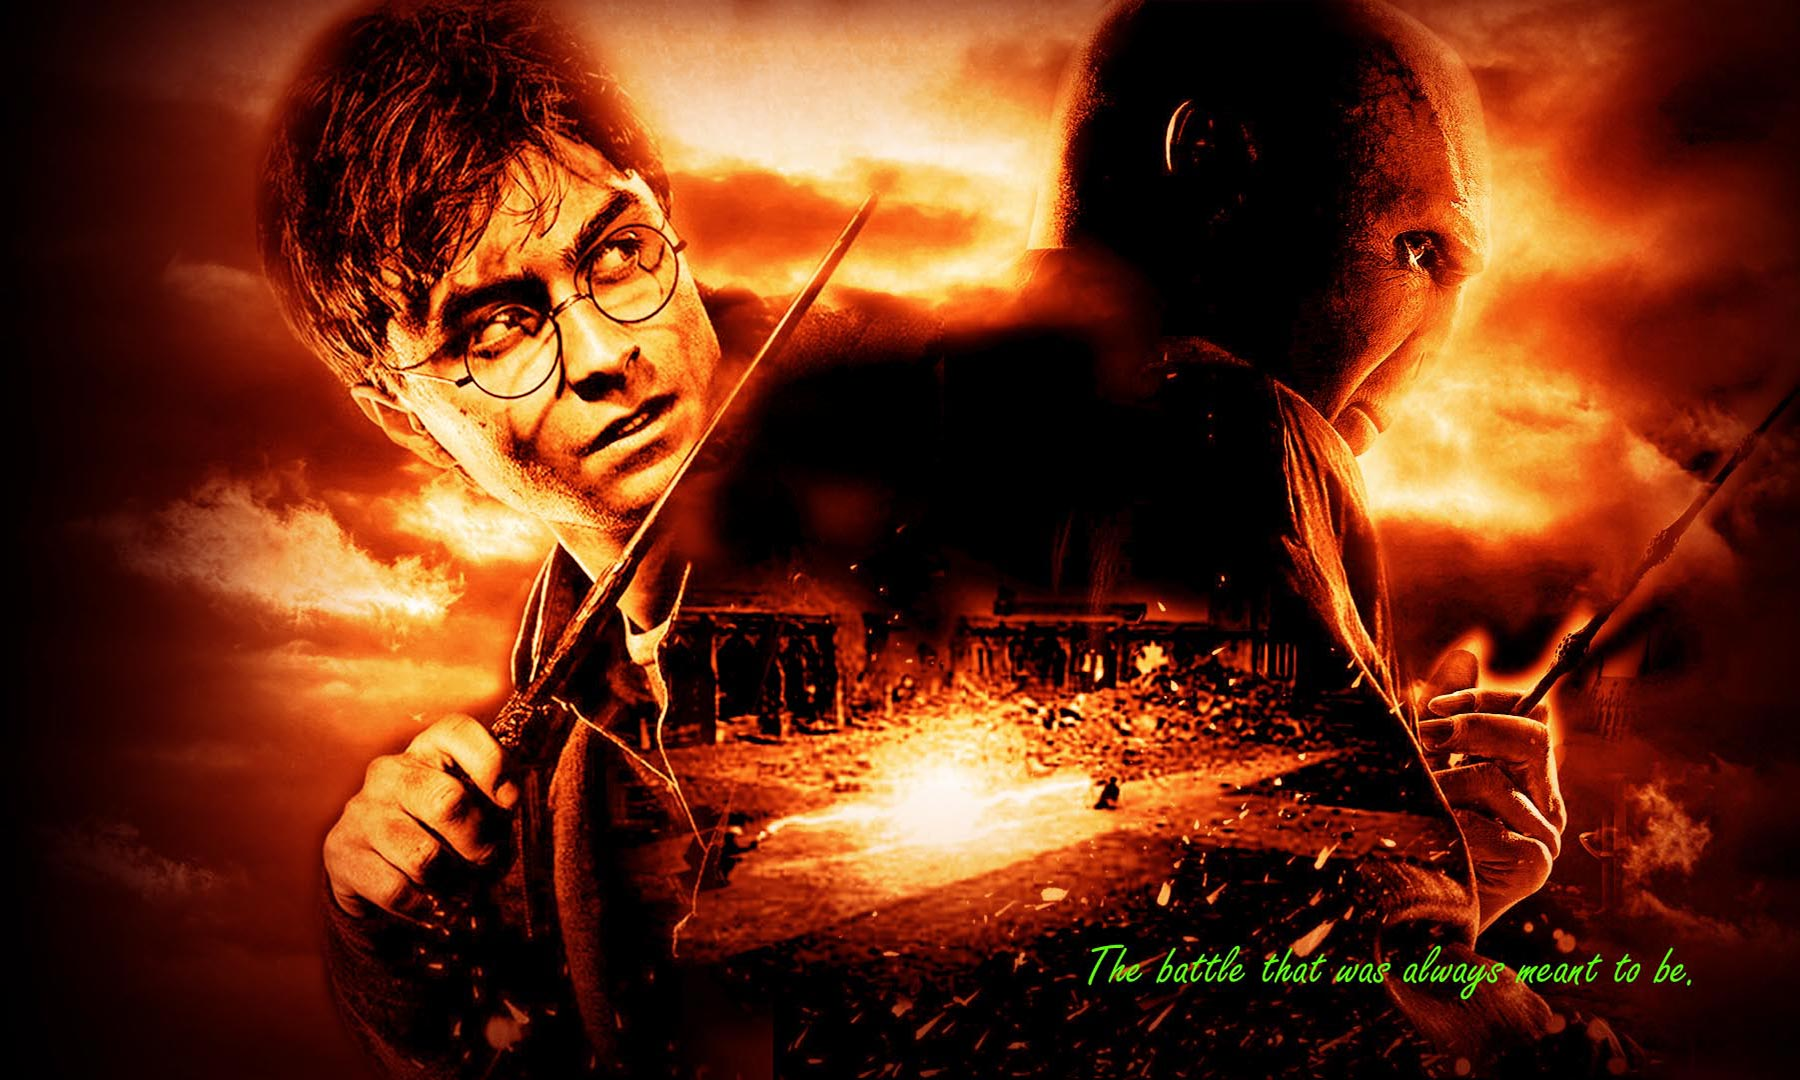 Harry potter vs lord voldemort